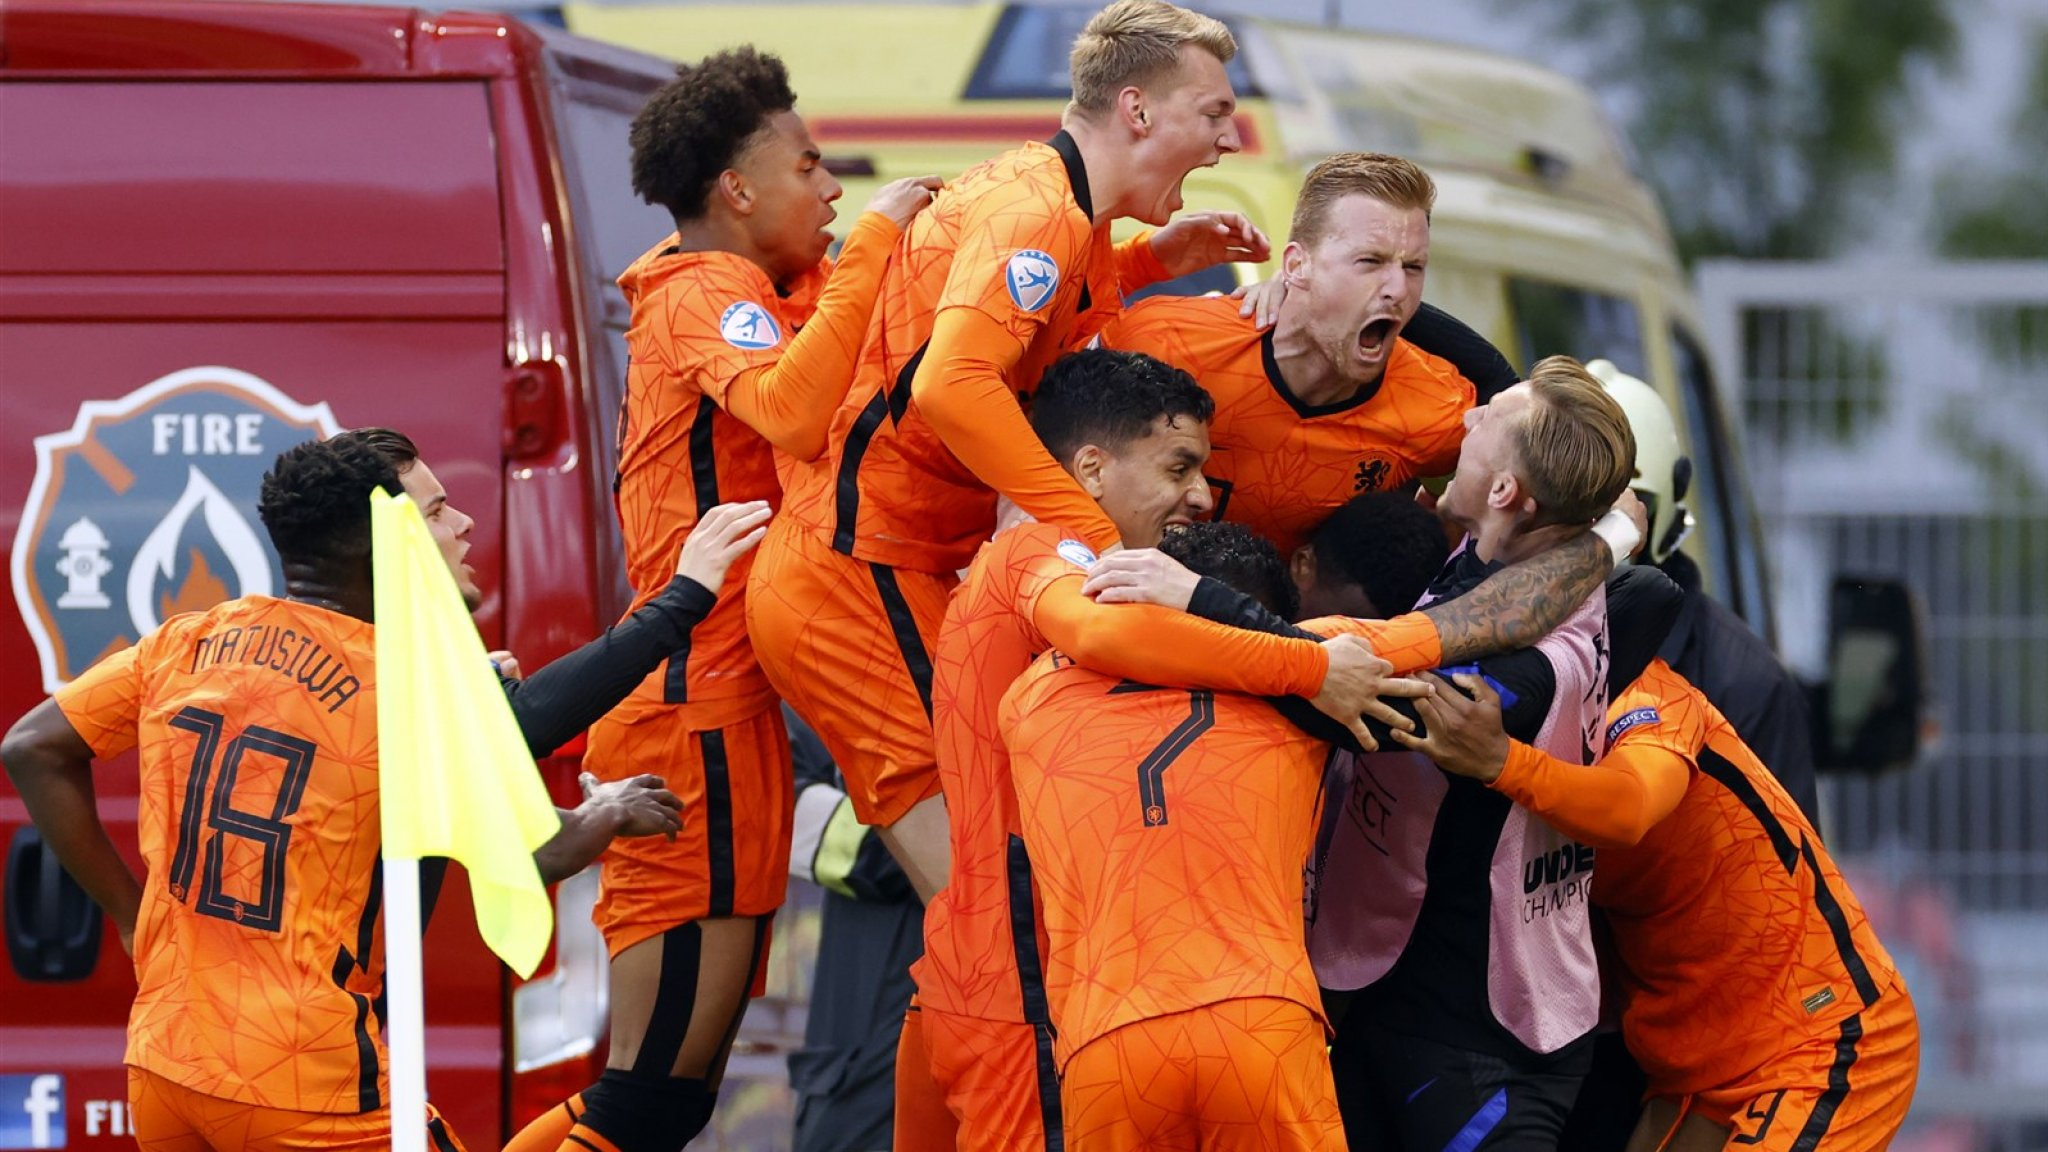 Dutch juniors qualify for the semi-finals of the European Championship after a surprise victory over France